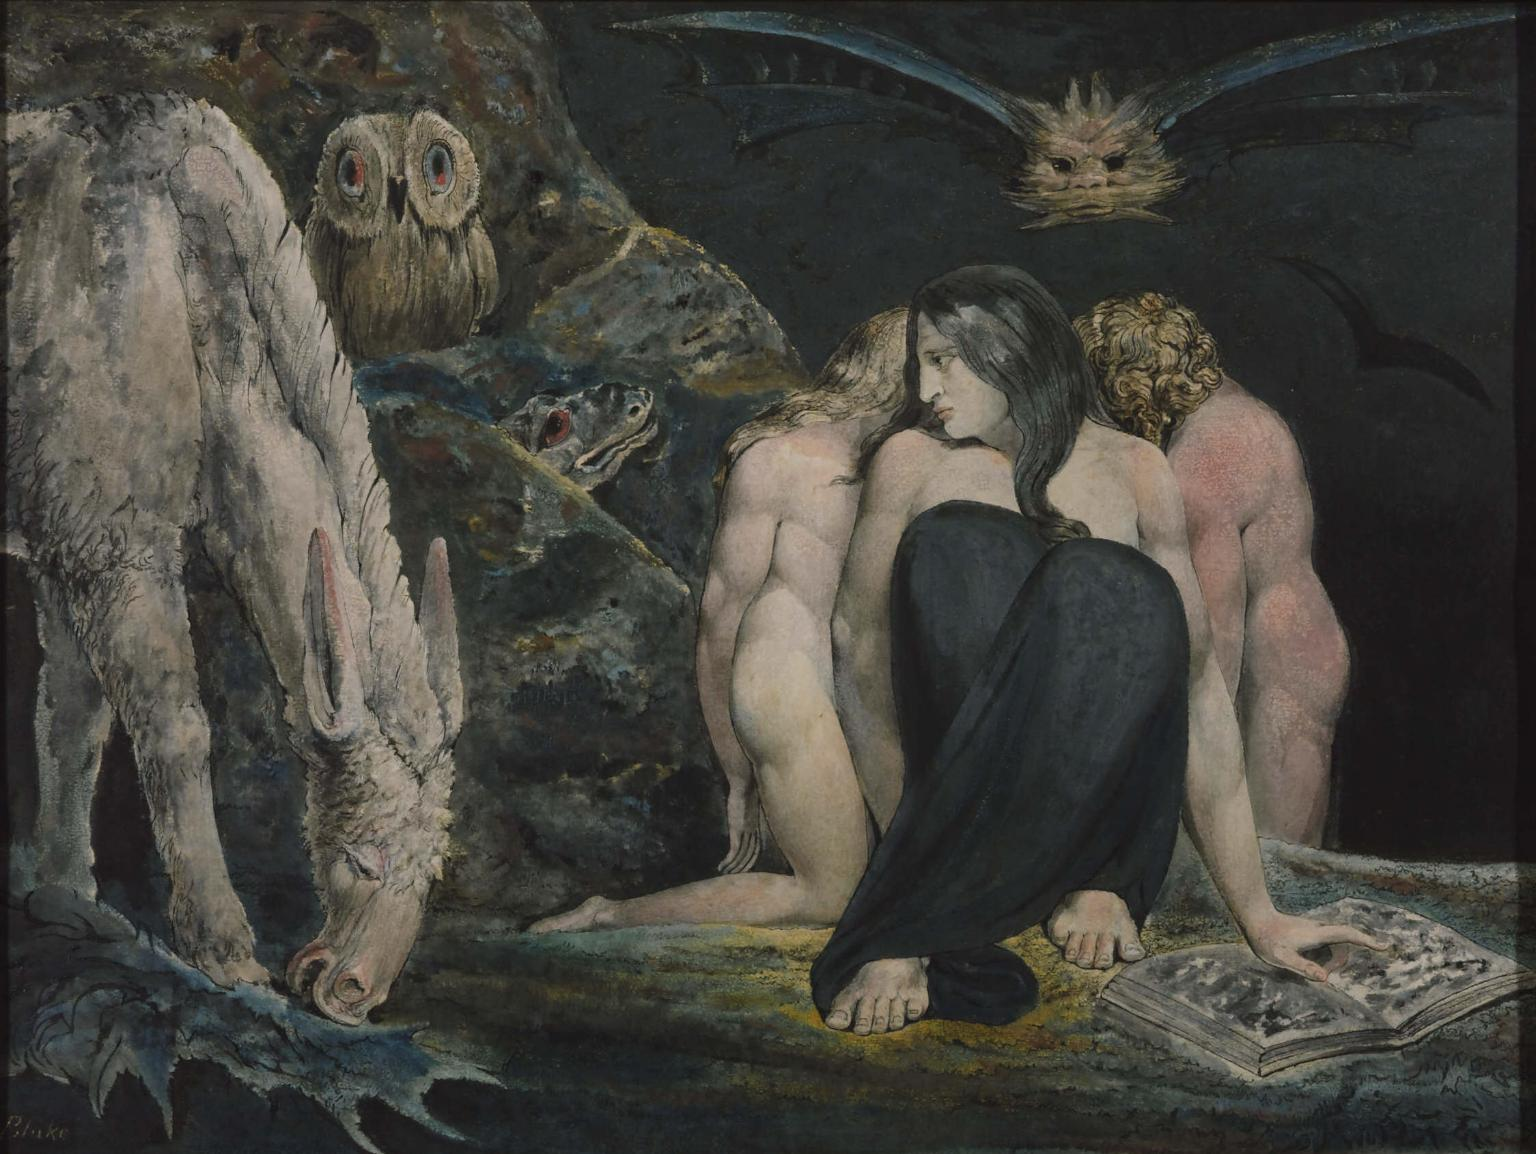 The Night of Enitharmon's Joy, 1795 — William Blake